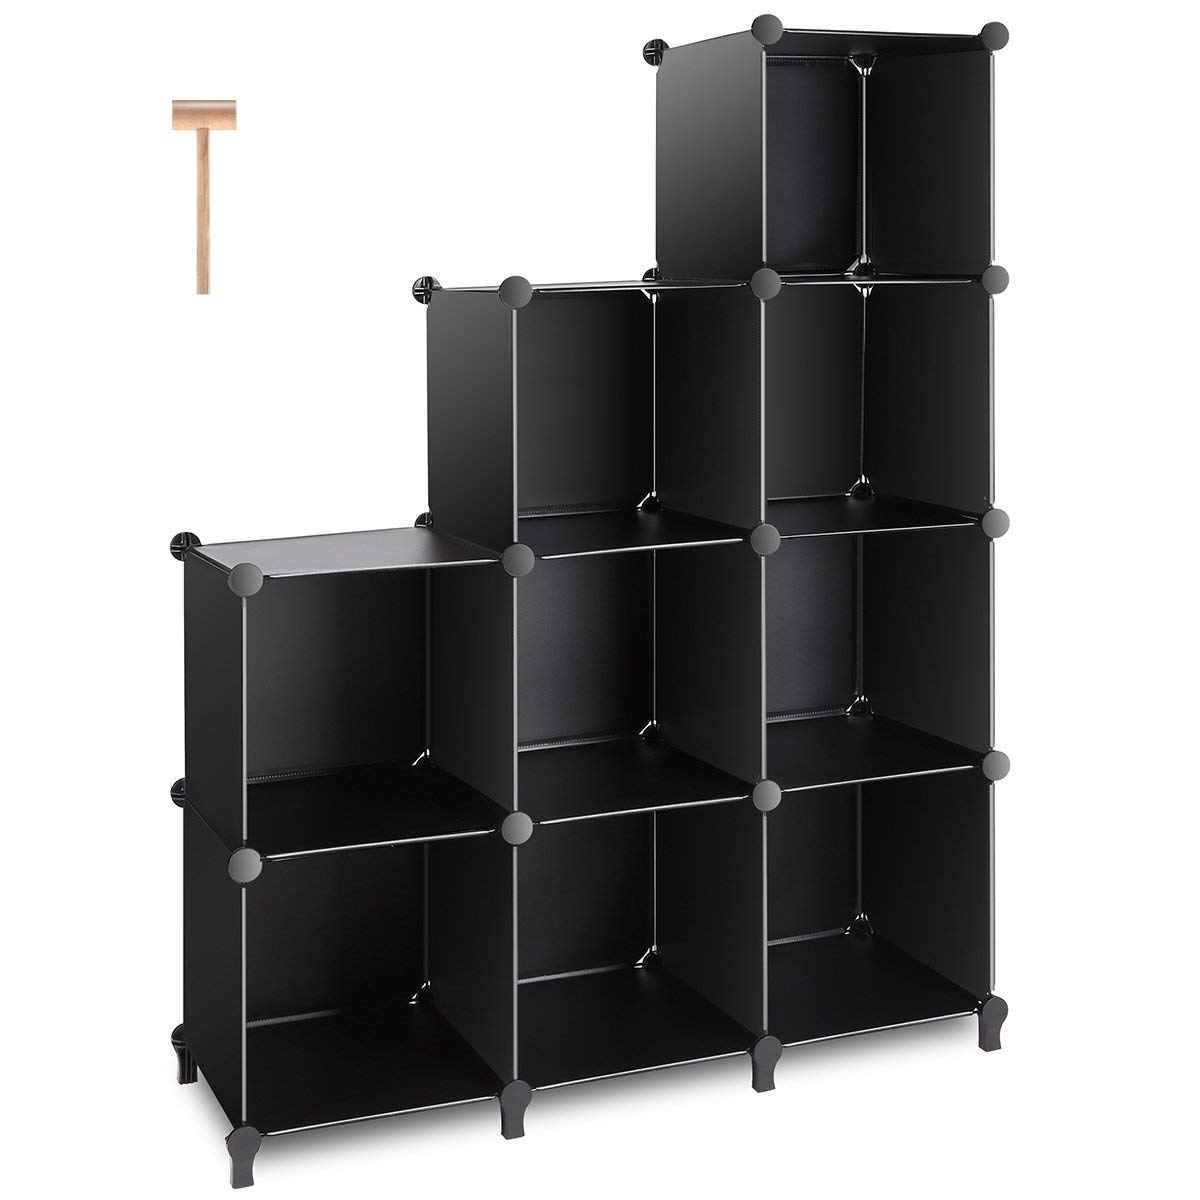 TomCare Cube Storage 9-Cube Closet Organizer Shelves Plastic Storage Cube Organizer DIY Closet Organizer Storage Cabinet Modular Book Shelf Shelving for Bedroom Living Room Office, Black by TomCare